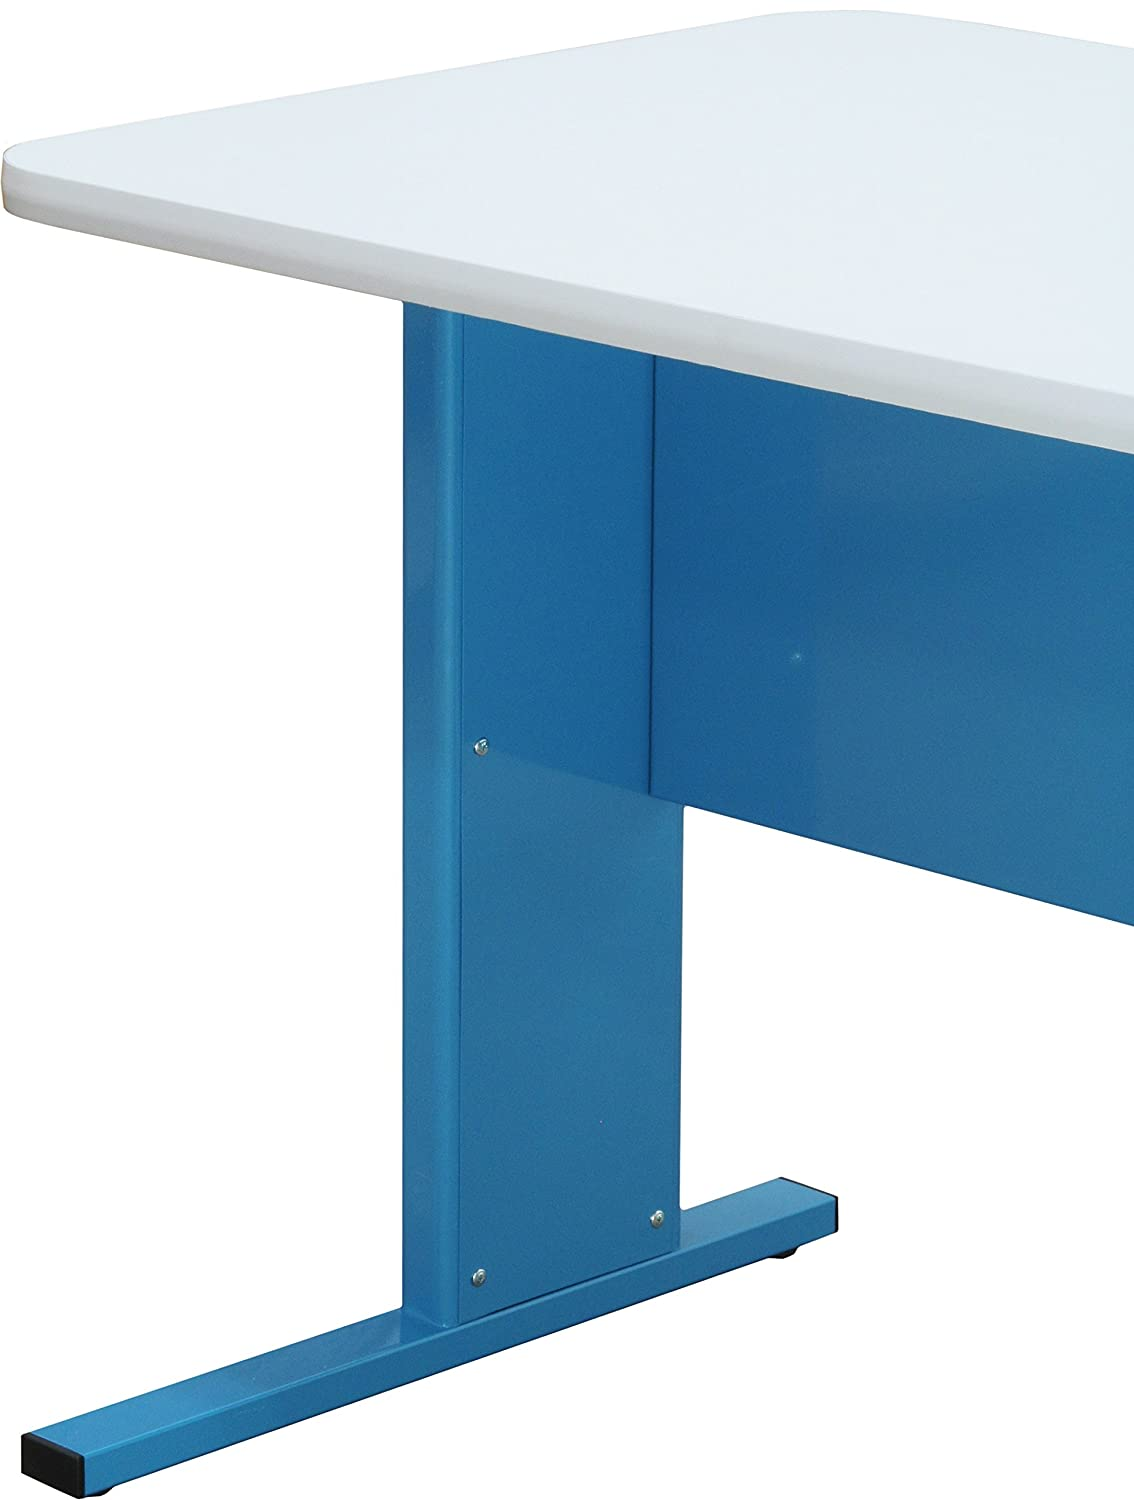 Admirable Apeco Bluejay Workbench Esd Anti Static Laminate Workstation Bralicious Painted Fabric Chair Ideas Braliciousco